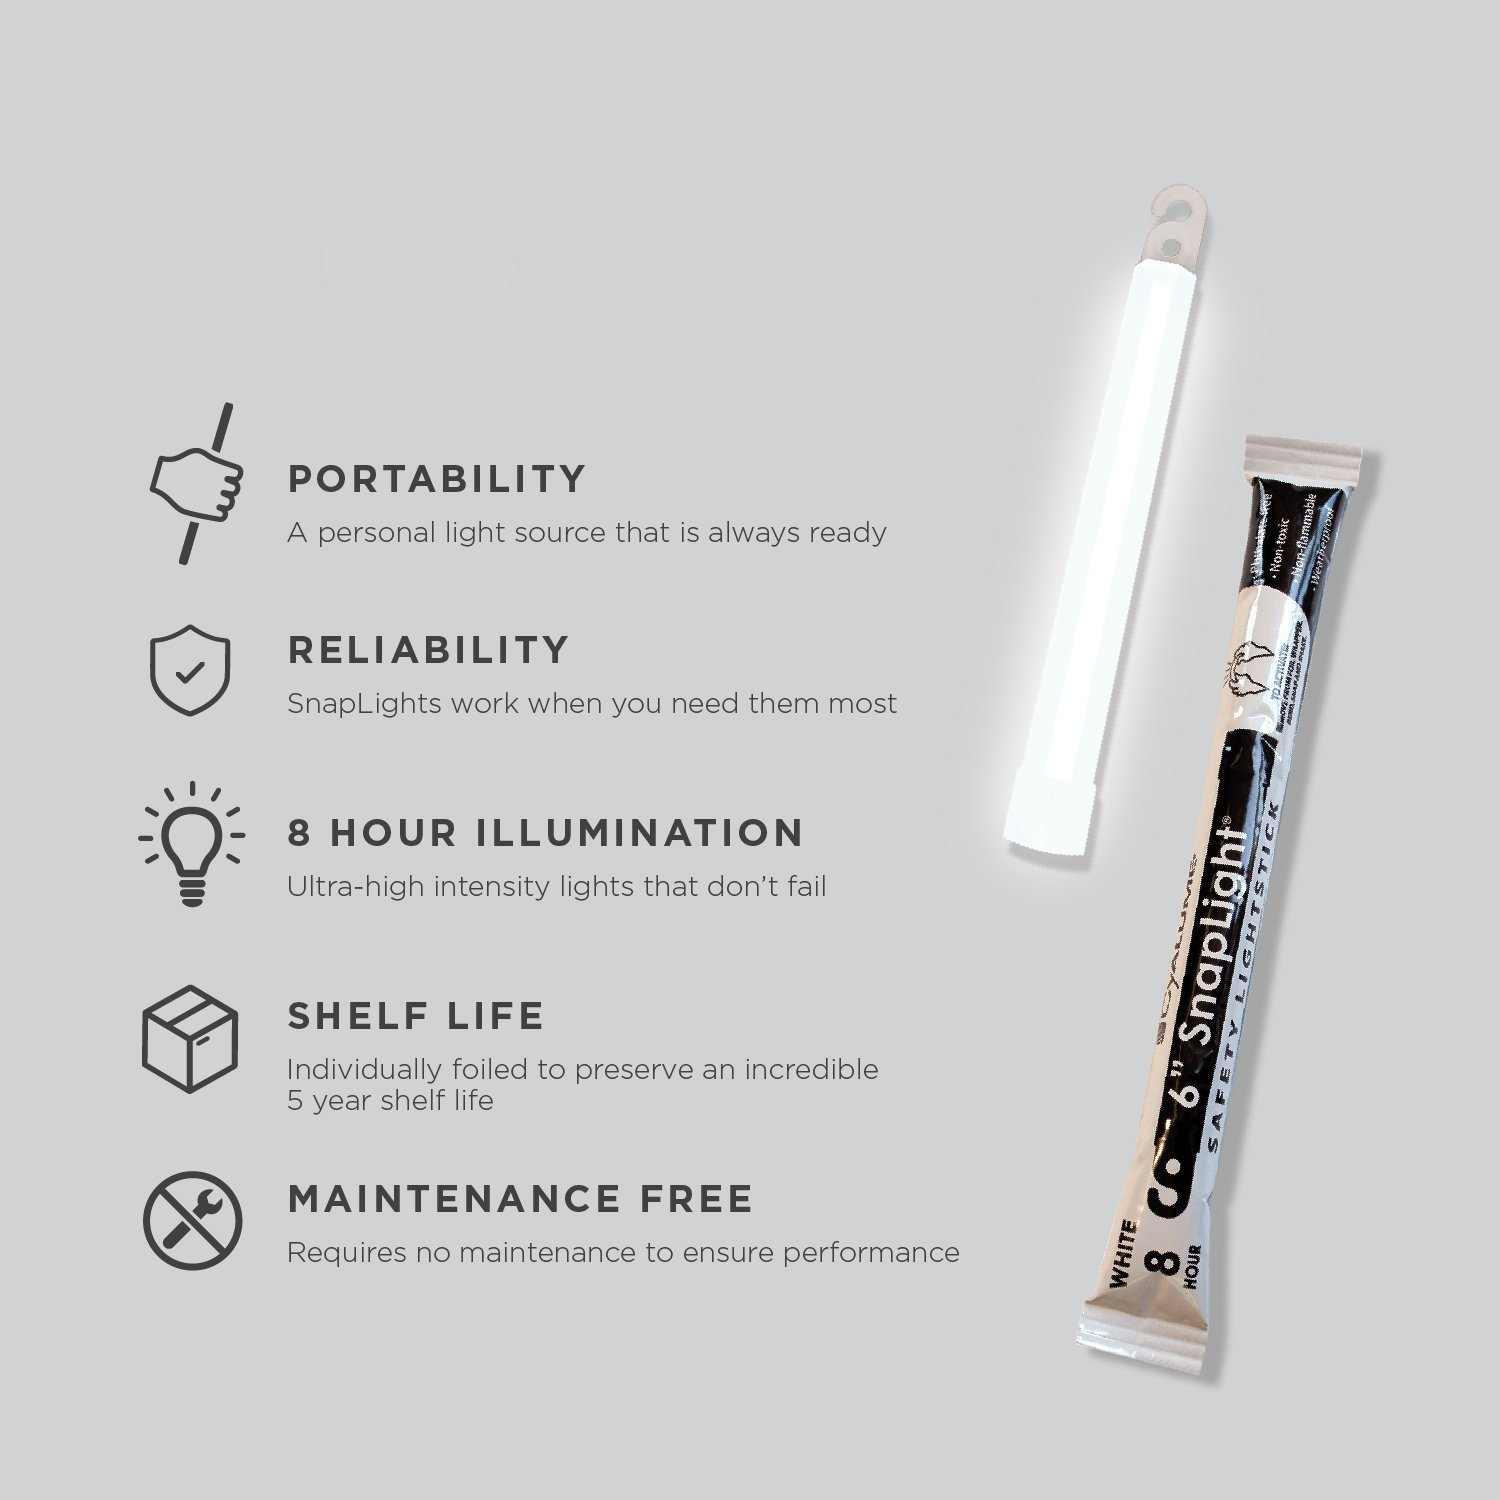 Cyalume SnapLight White Light Sticks – 6 Inch Industrial Grade, High Intensity Glow Sticks with 8 Hour Duration (Pack of 30) by Cyalume (Image #5)